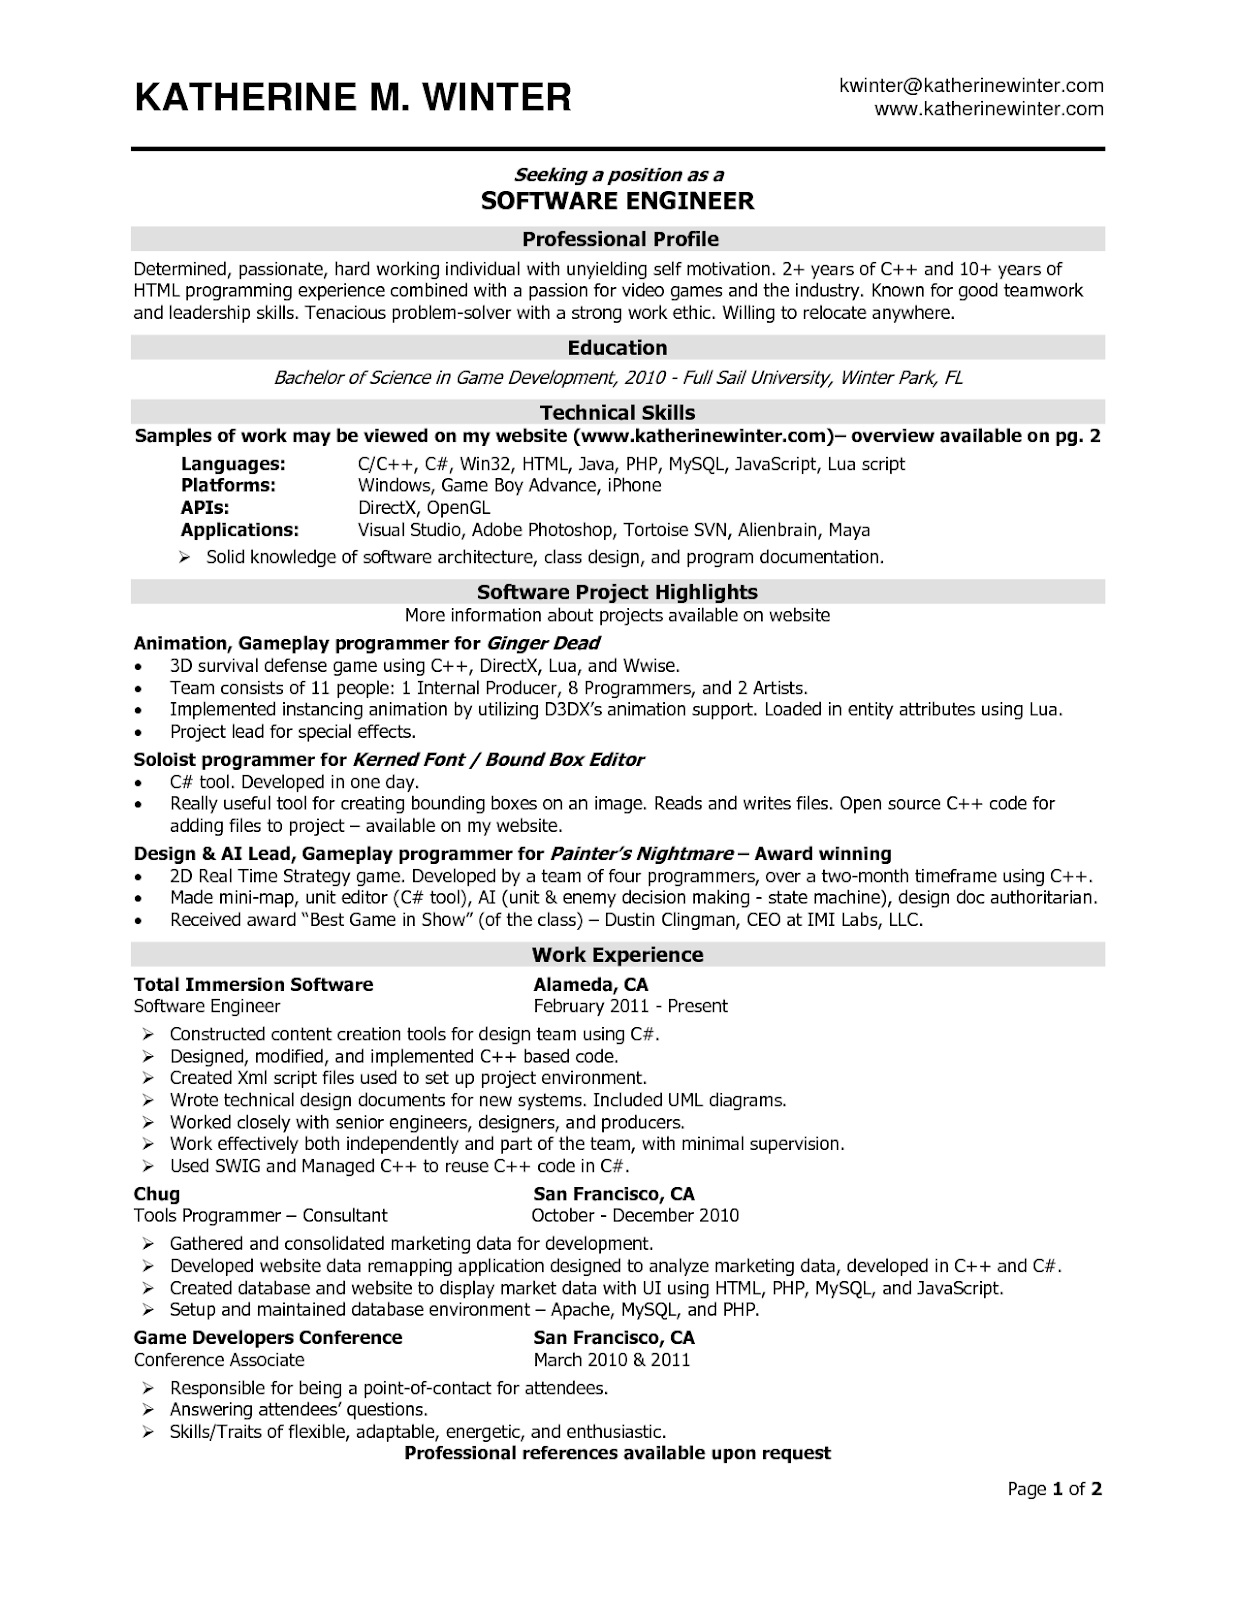 software engineer sample resume software engineer resume samples sample resumes software engineer sample resume 1214 network - Network Administrator Resume Example